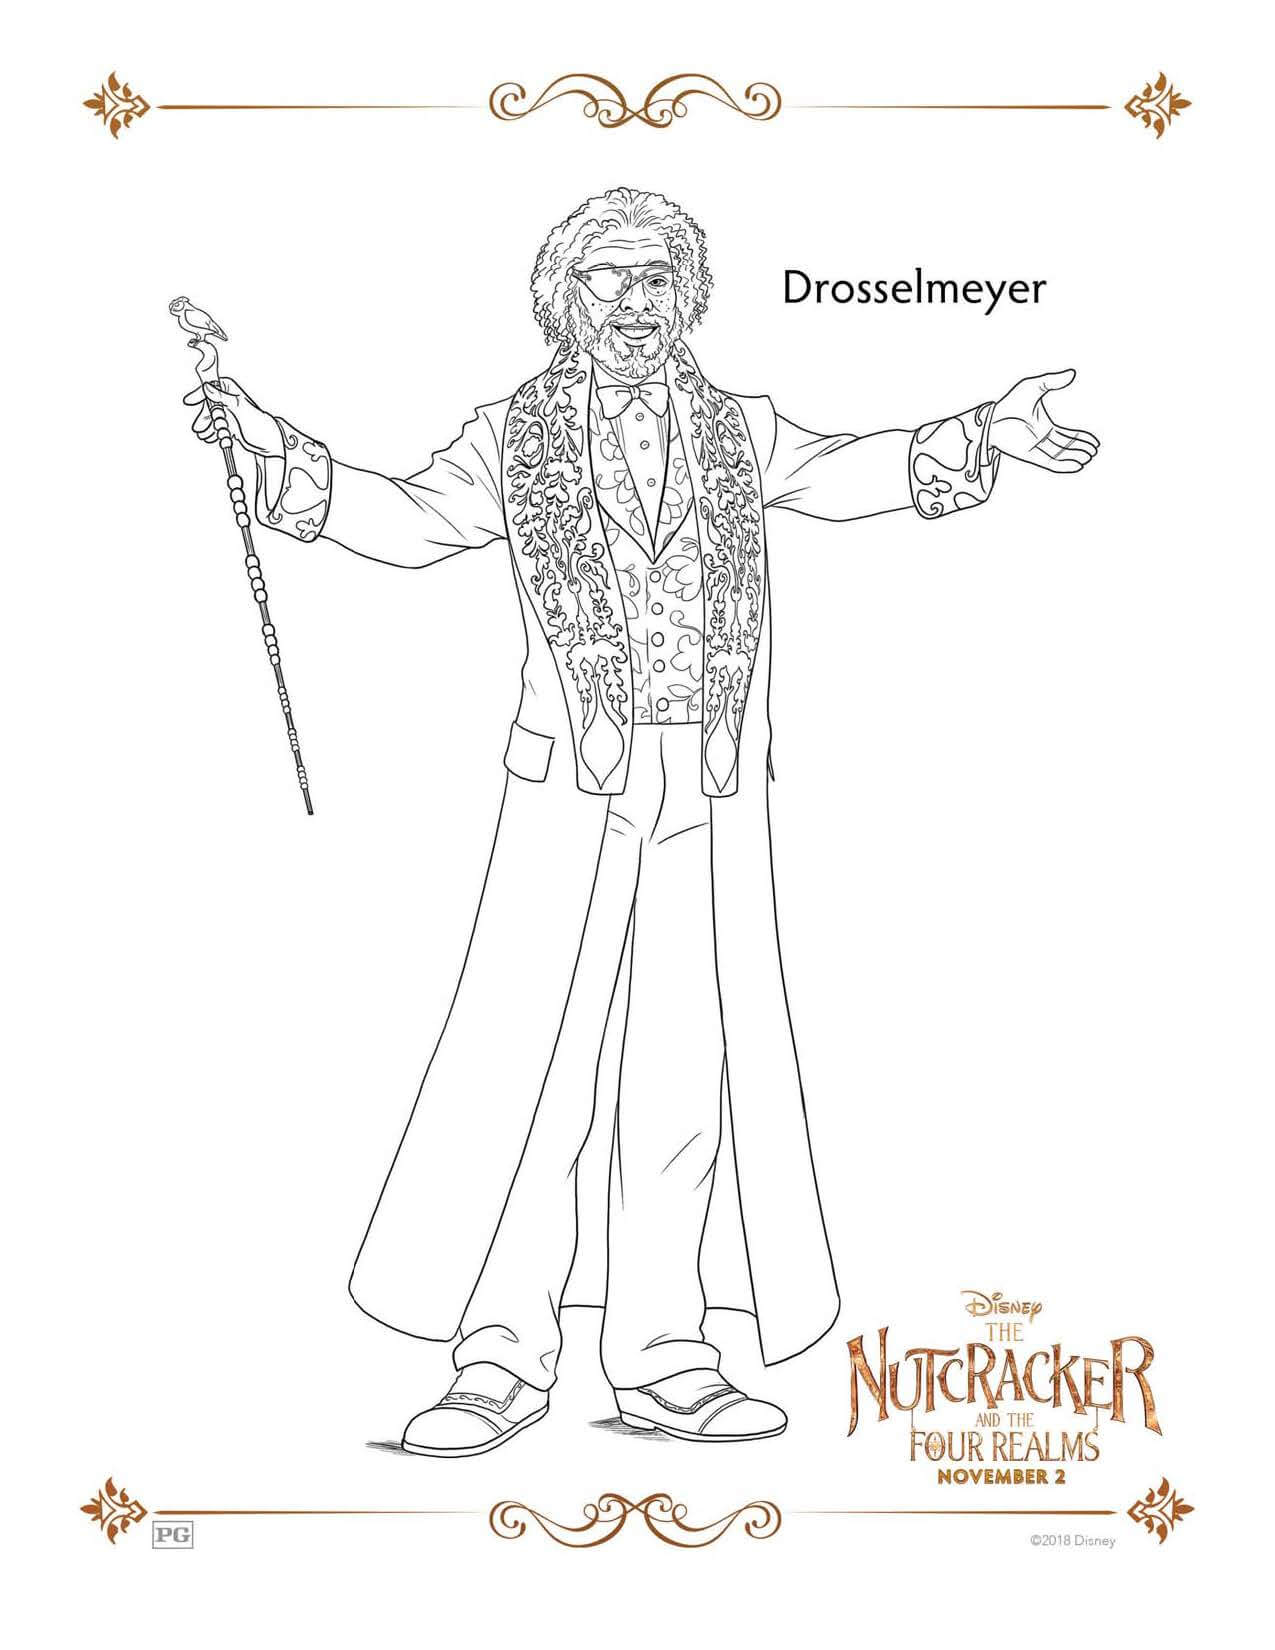 Drosselmeyer THE NUTCRACKER AND THE FOUR REALMS